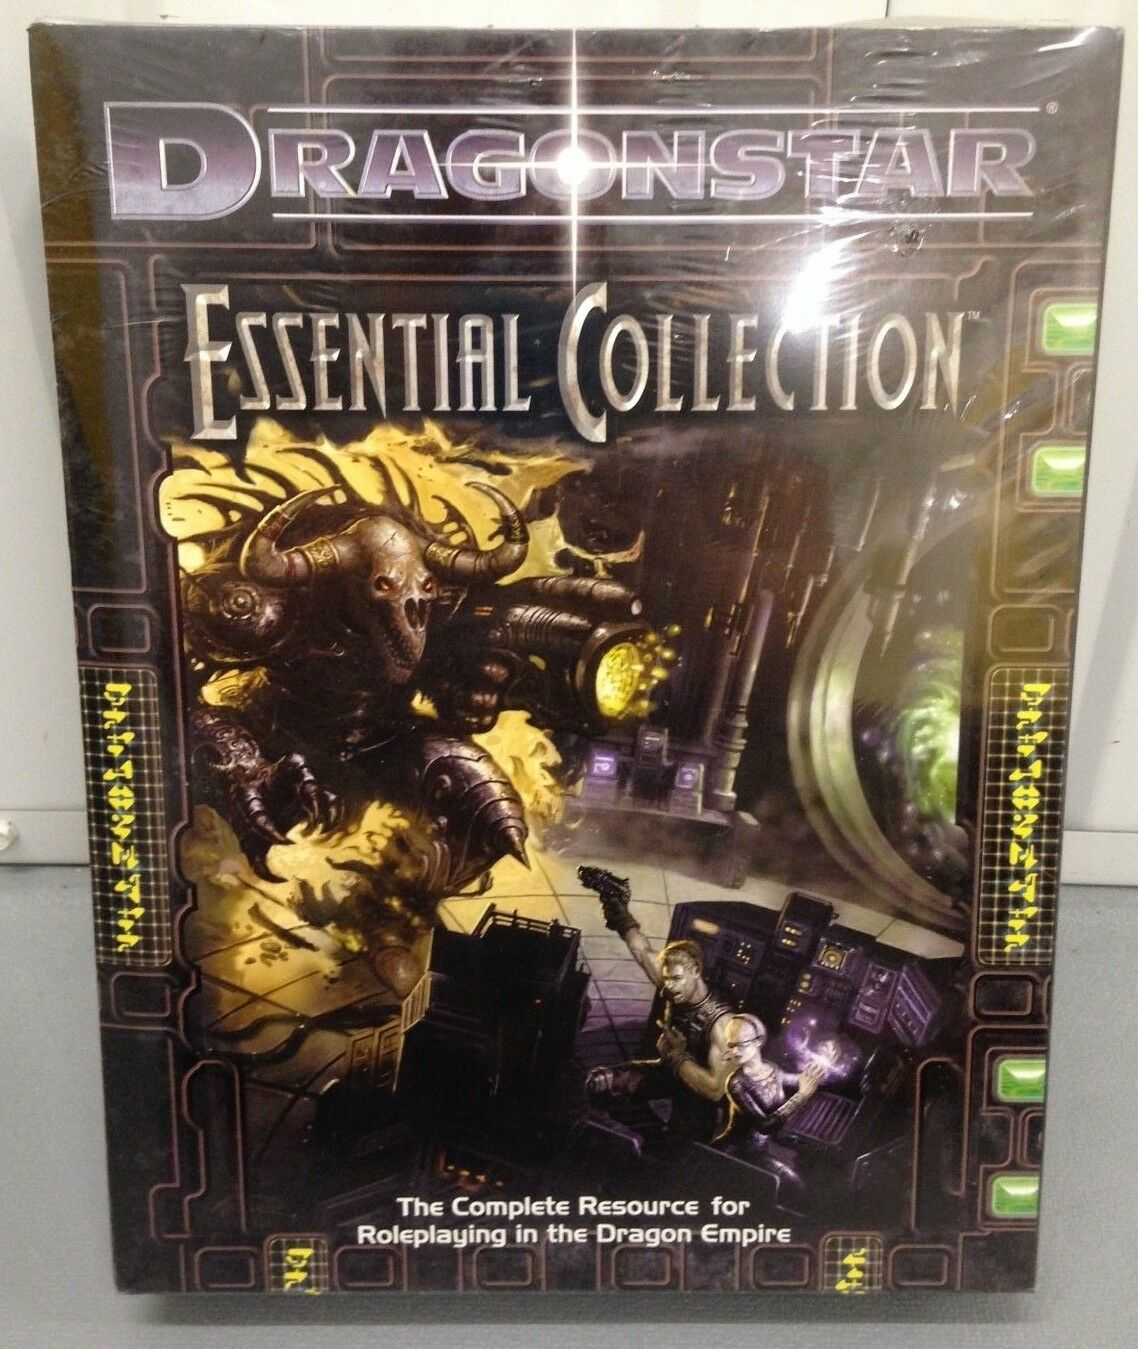 Dragon Star Essential Collection - Resource for Roleplaying in the Dragon Empire